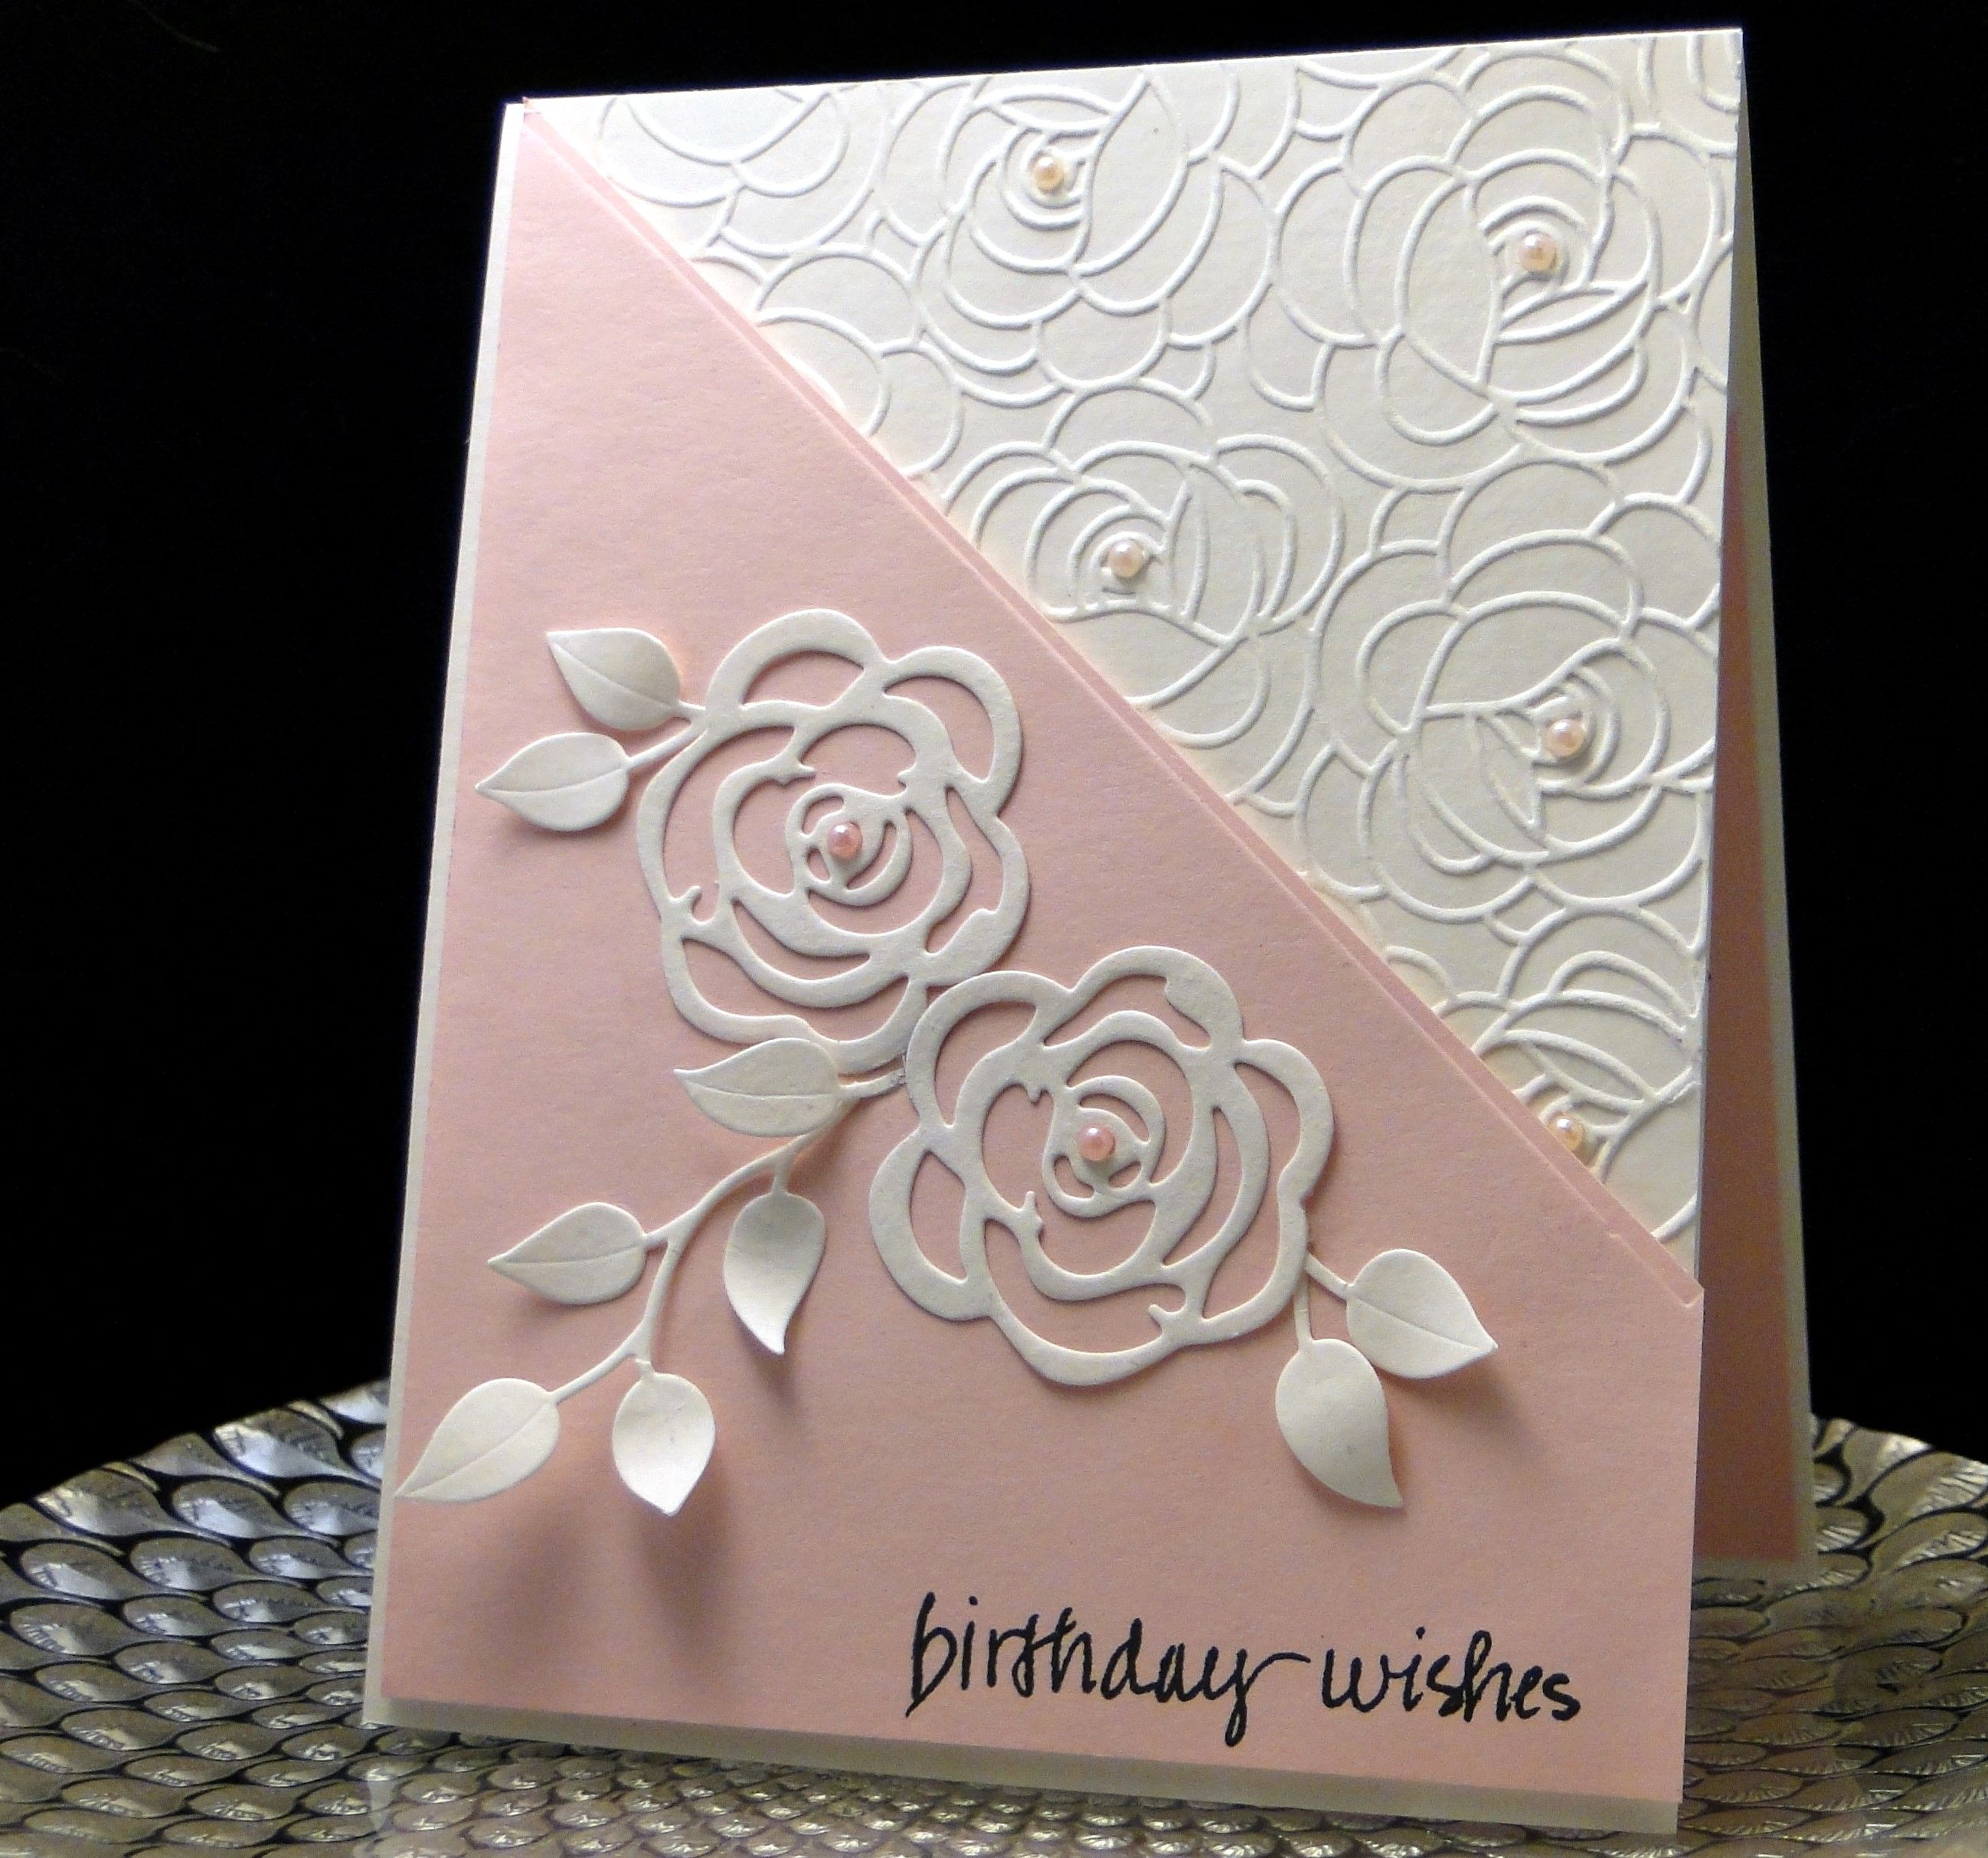 Bday card for sue m taylored expression rose ef made by peggy